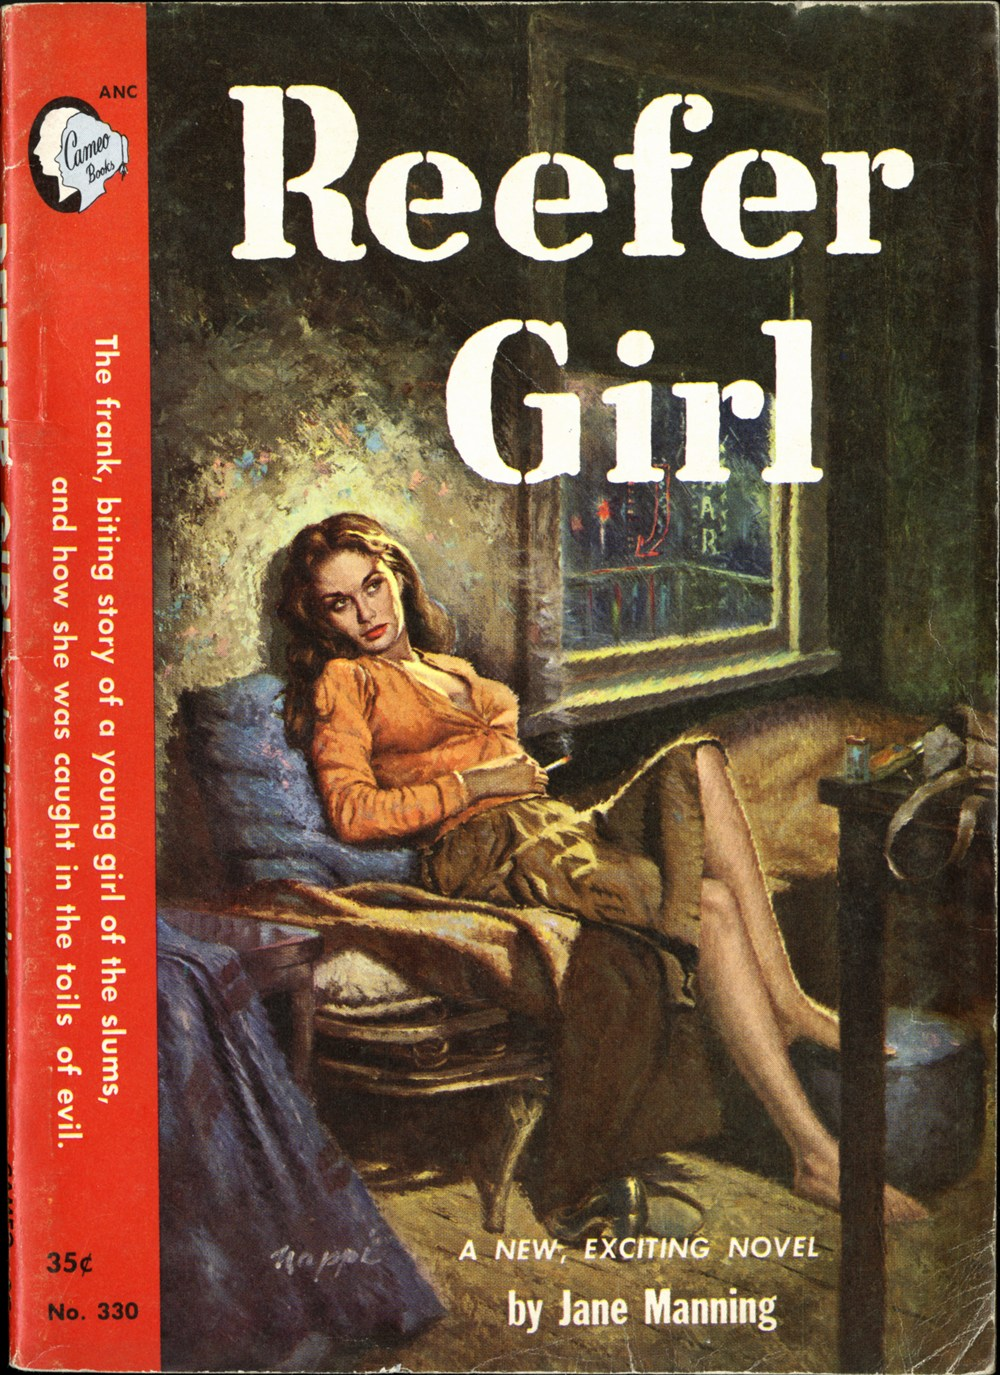 Reefer_Girl_Scan.jpg